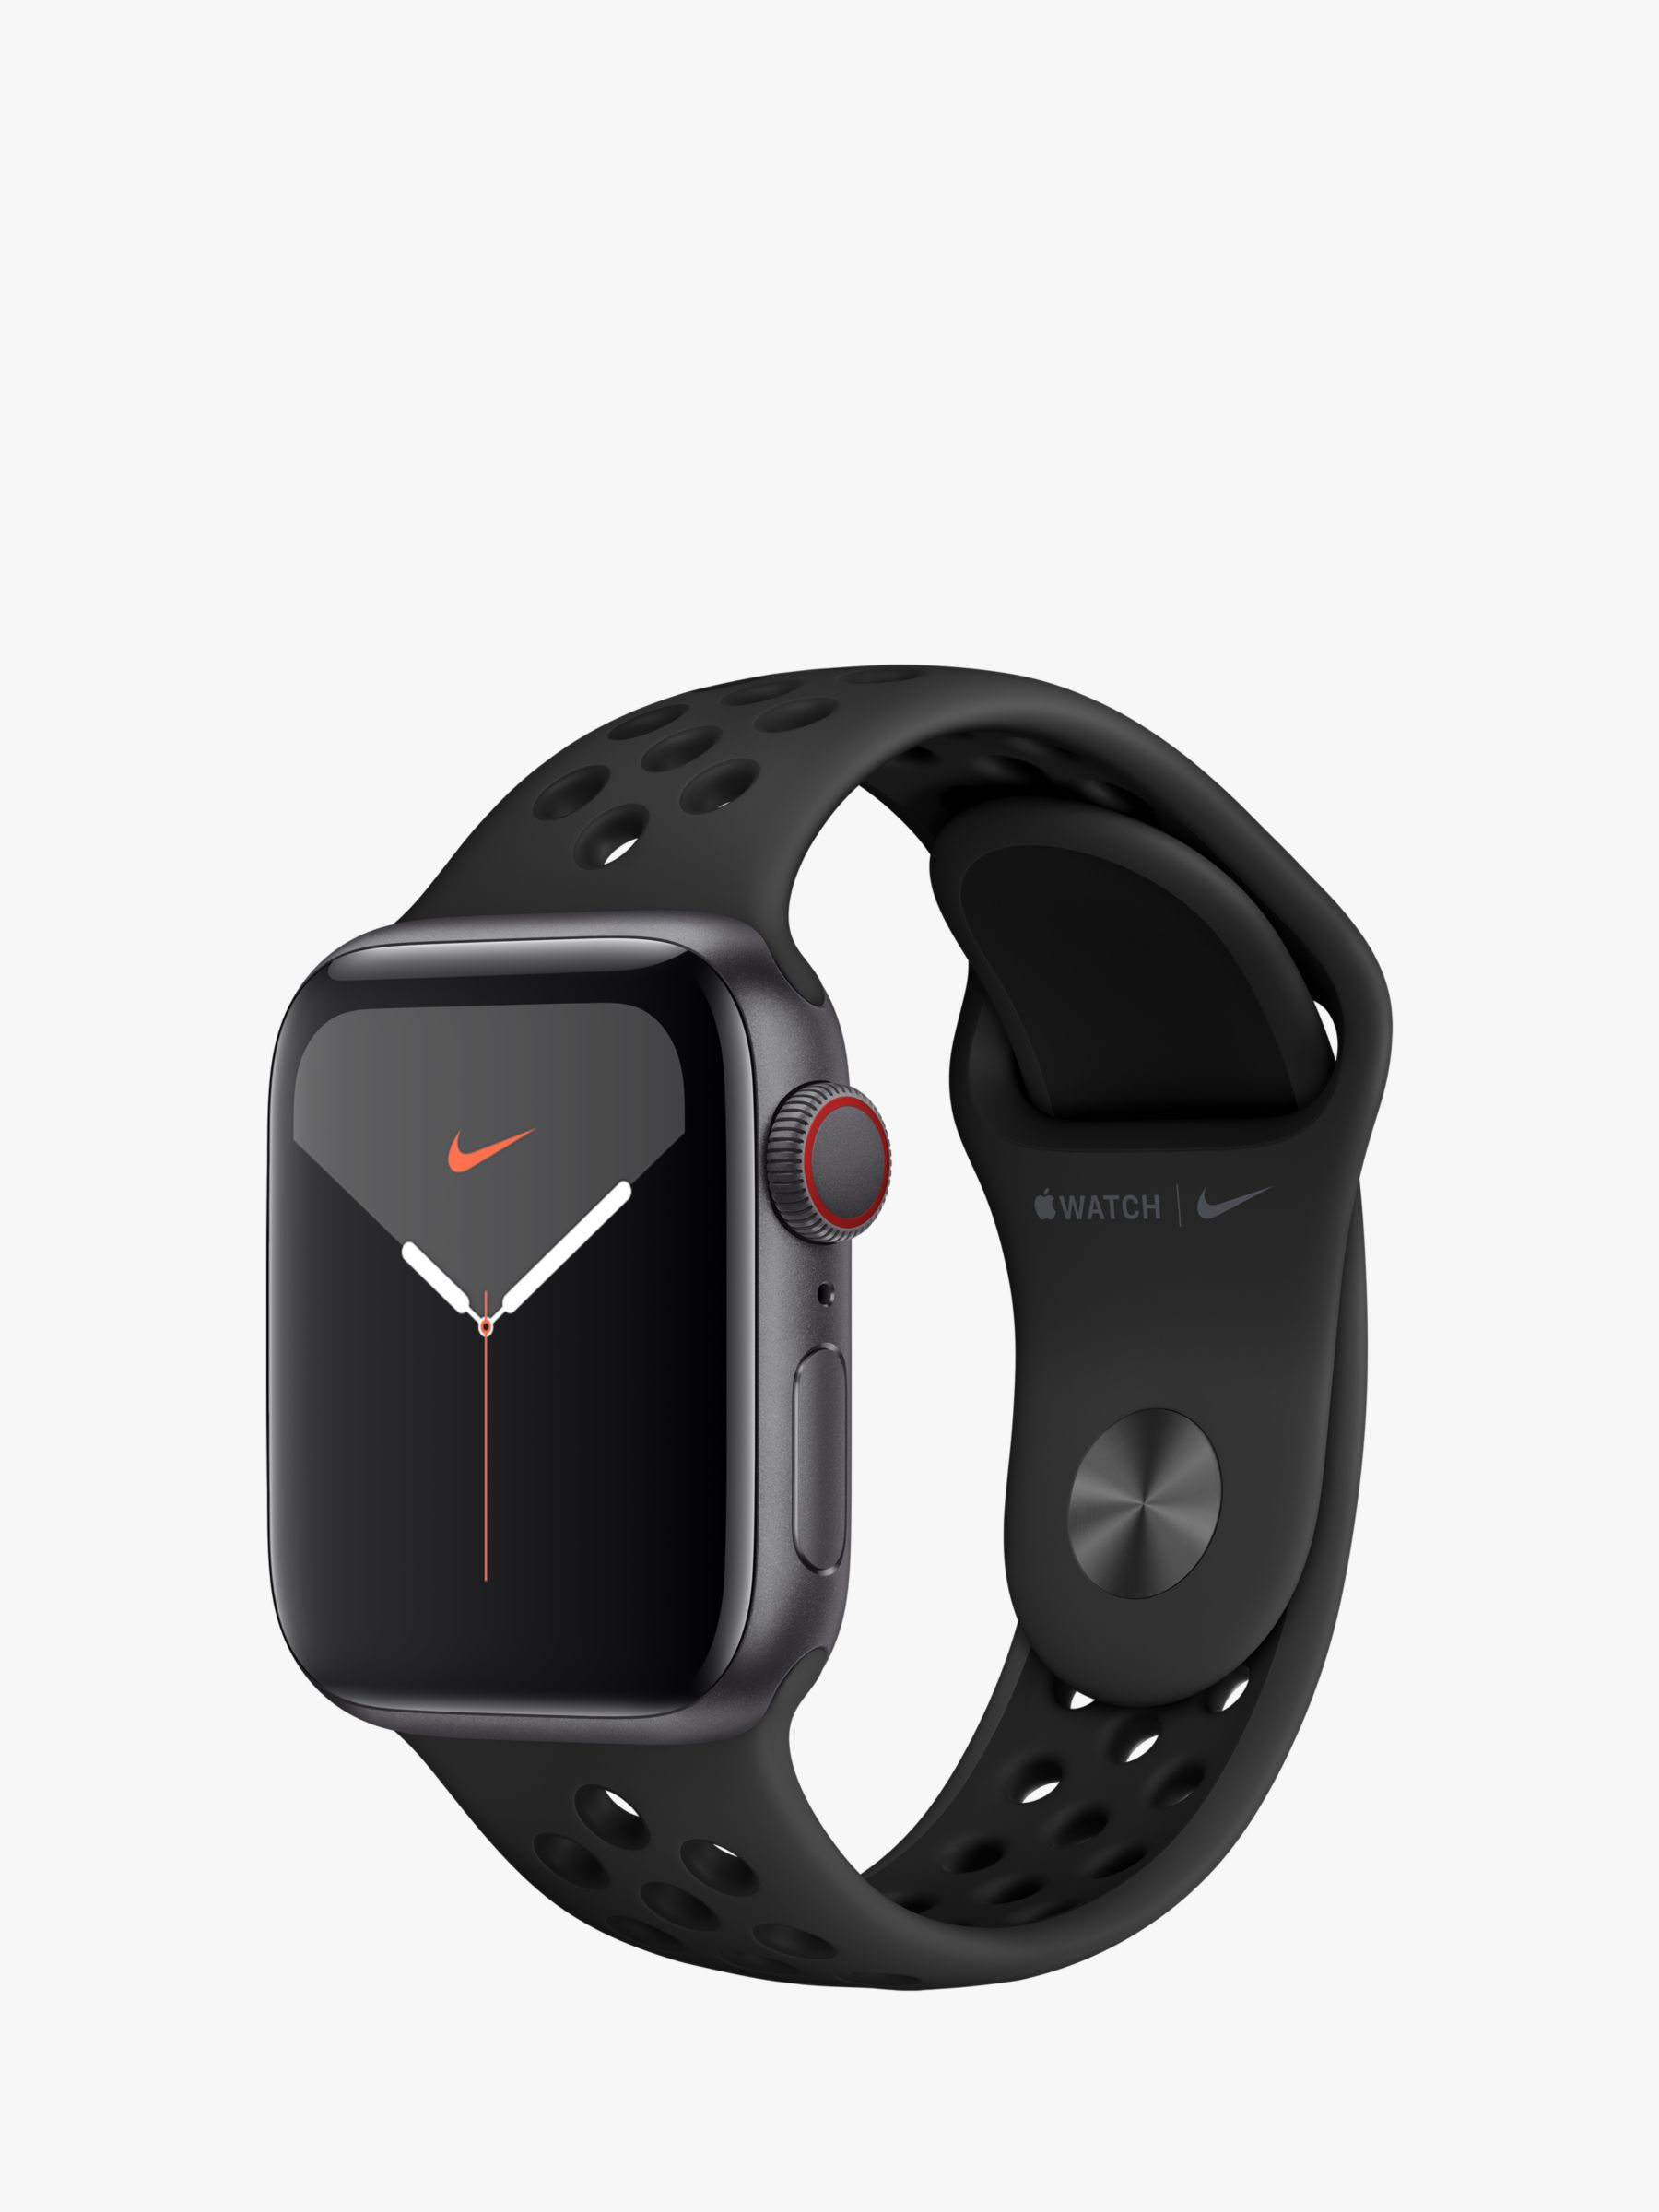 Apple Apple Watch Nike Series 5 GPS + Cellular, 40mm Space Gray Aluminium Case with Anthracite/Black Nike Sport Band - S/M & M/L